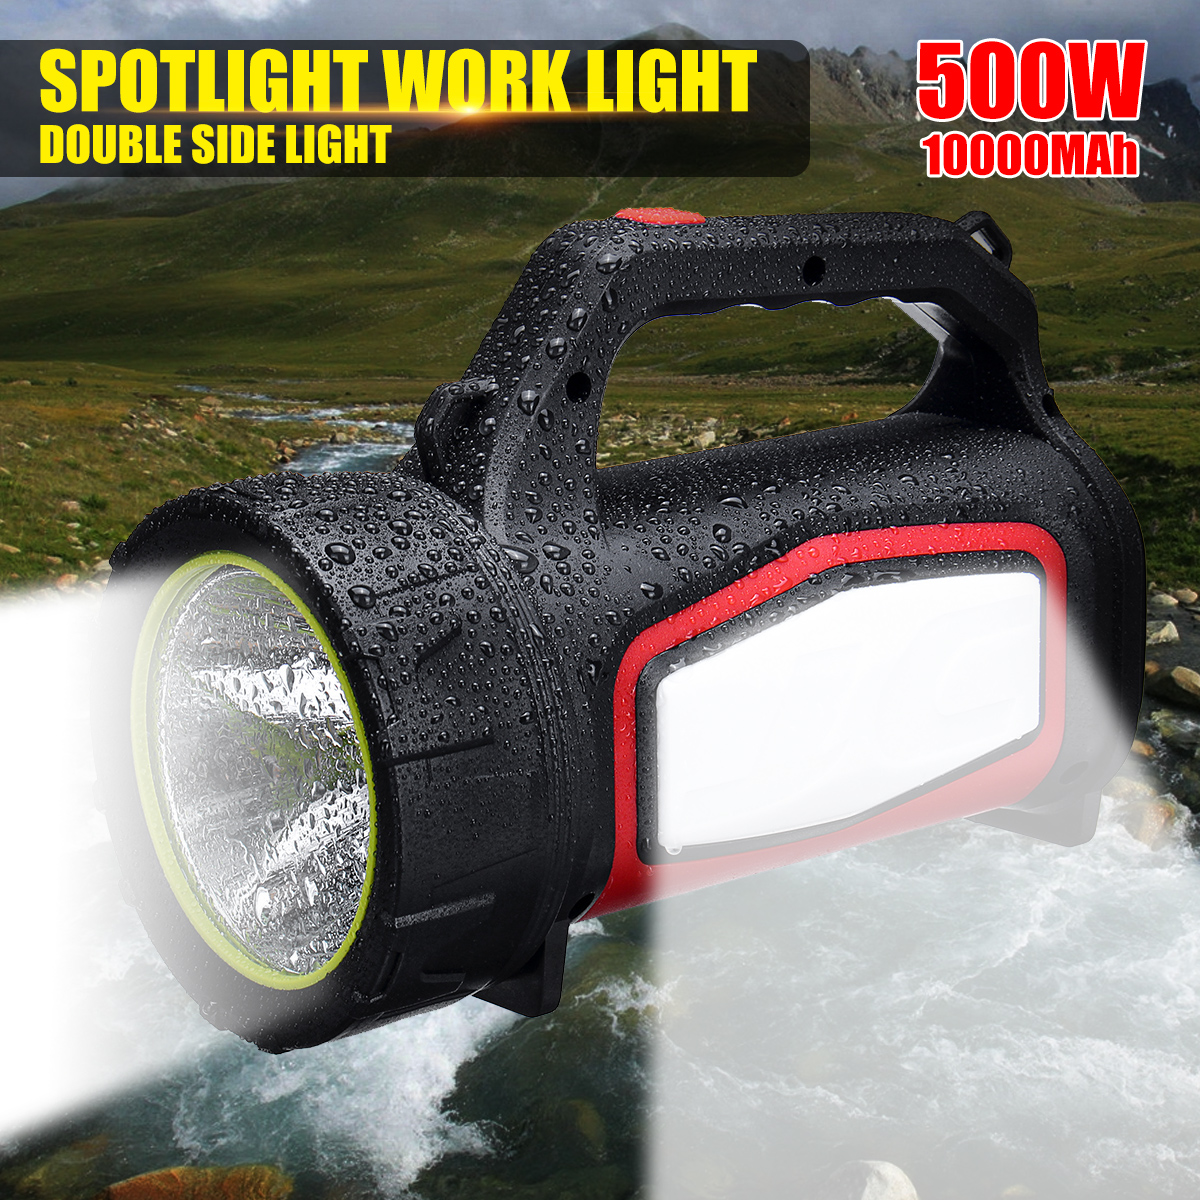 500w Bright Protable Spotlight 3500LM Search Light Hunting Searchlight 10000mAh Built-in Battery Waterproof Camping Lantern